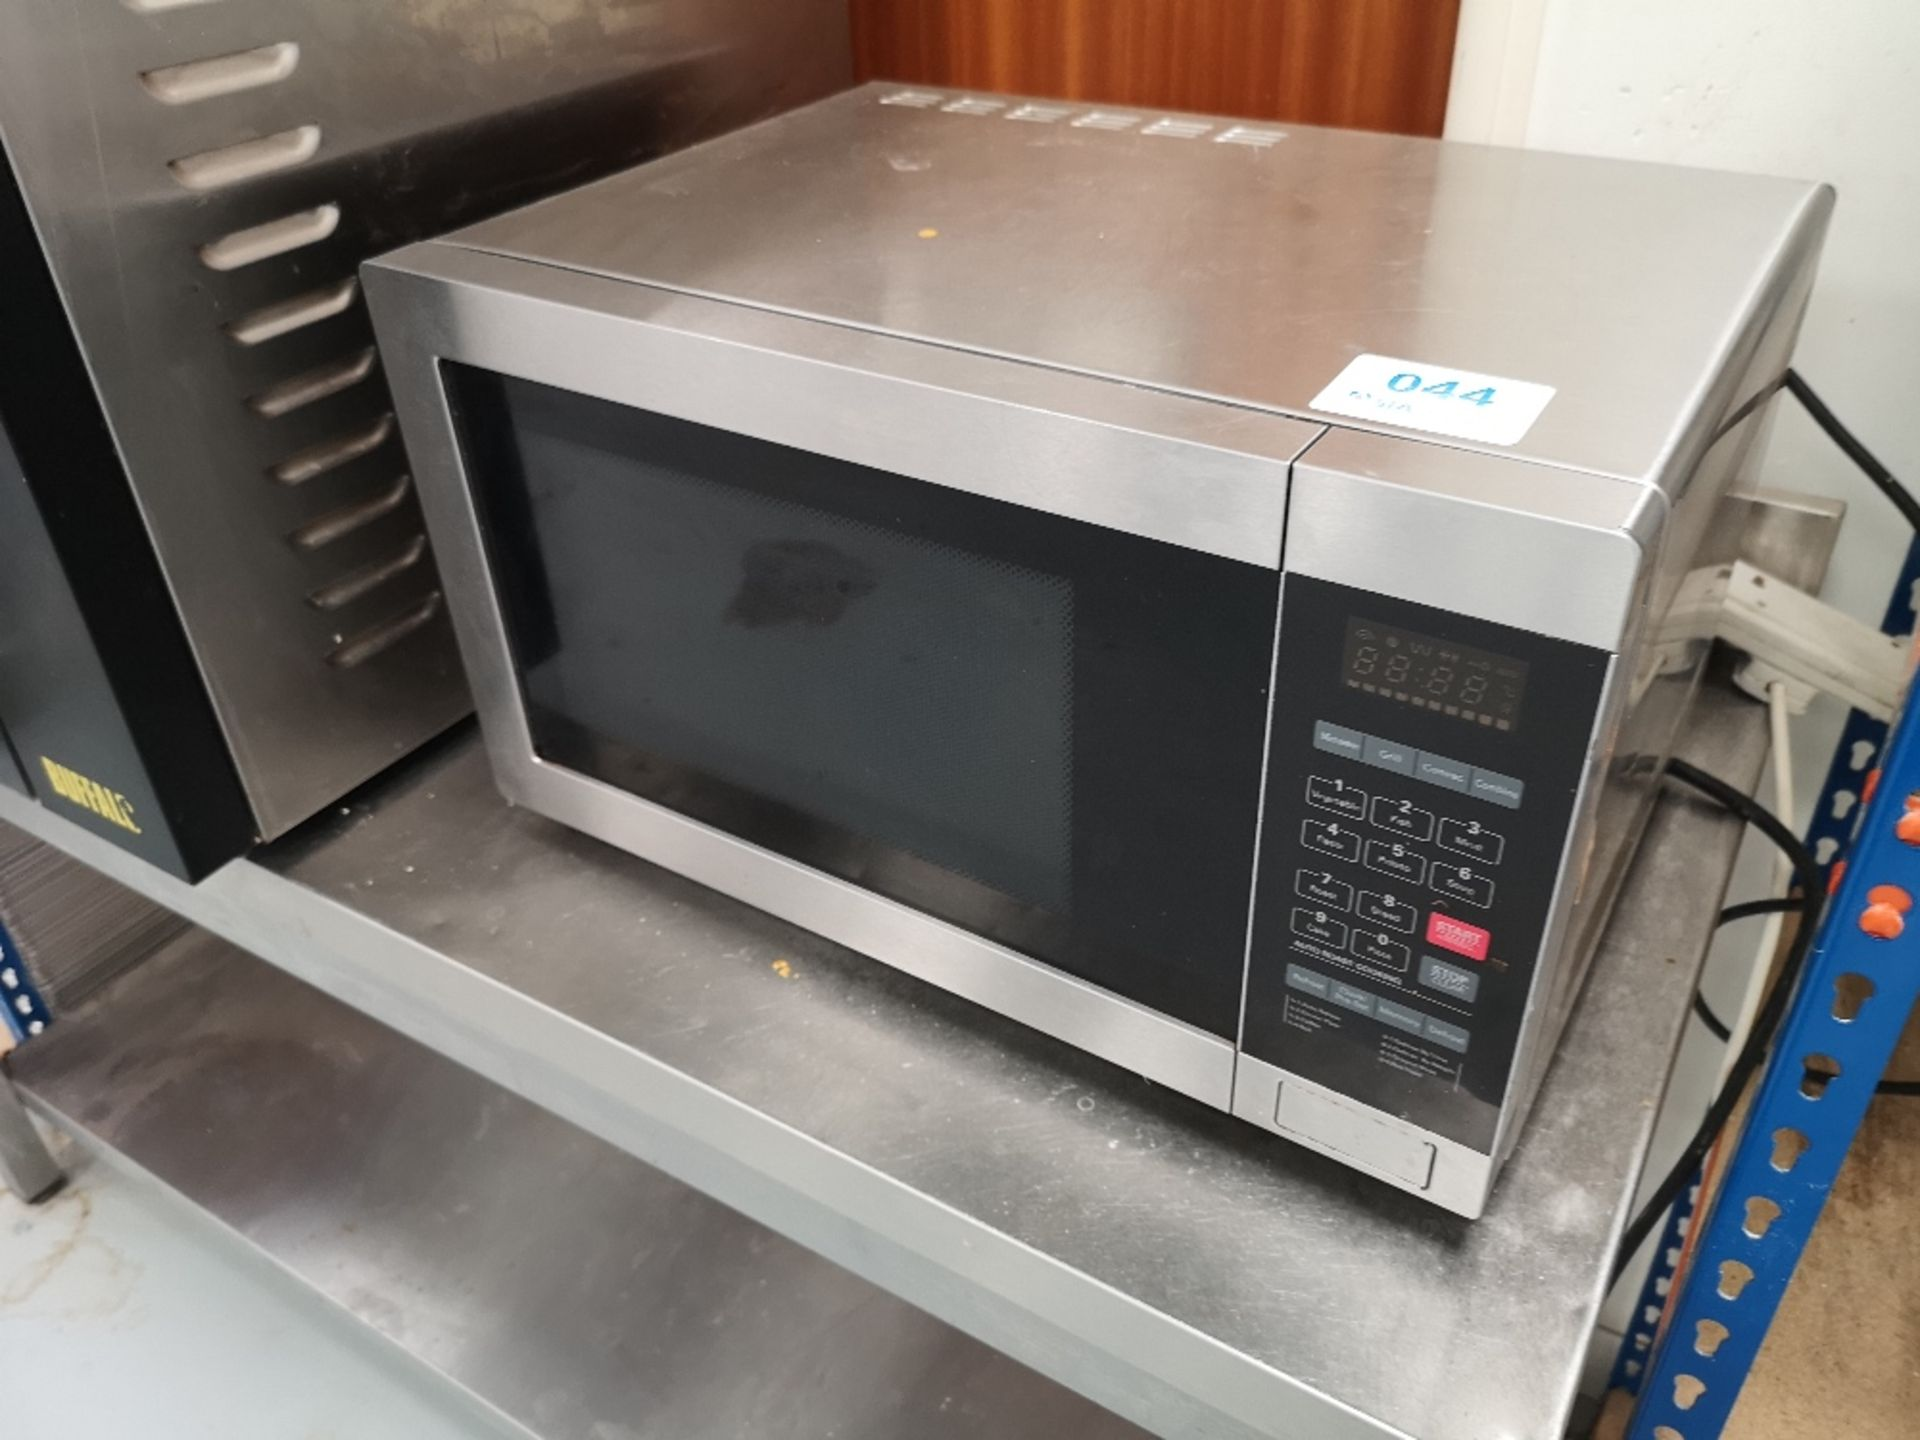 Commercial Microwave Oven - Image 2 of 3